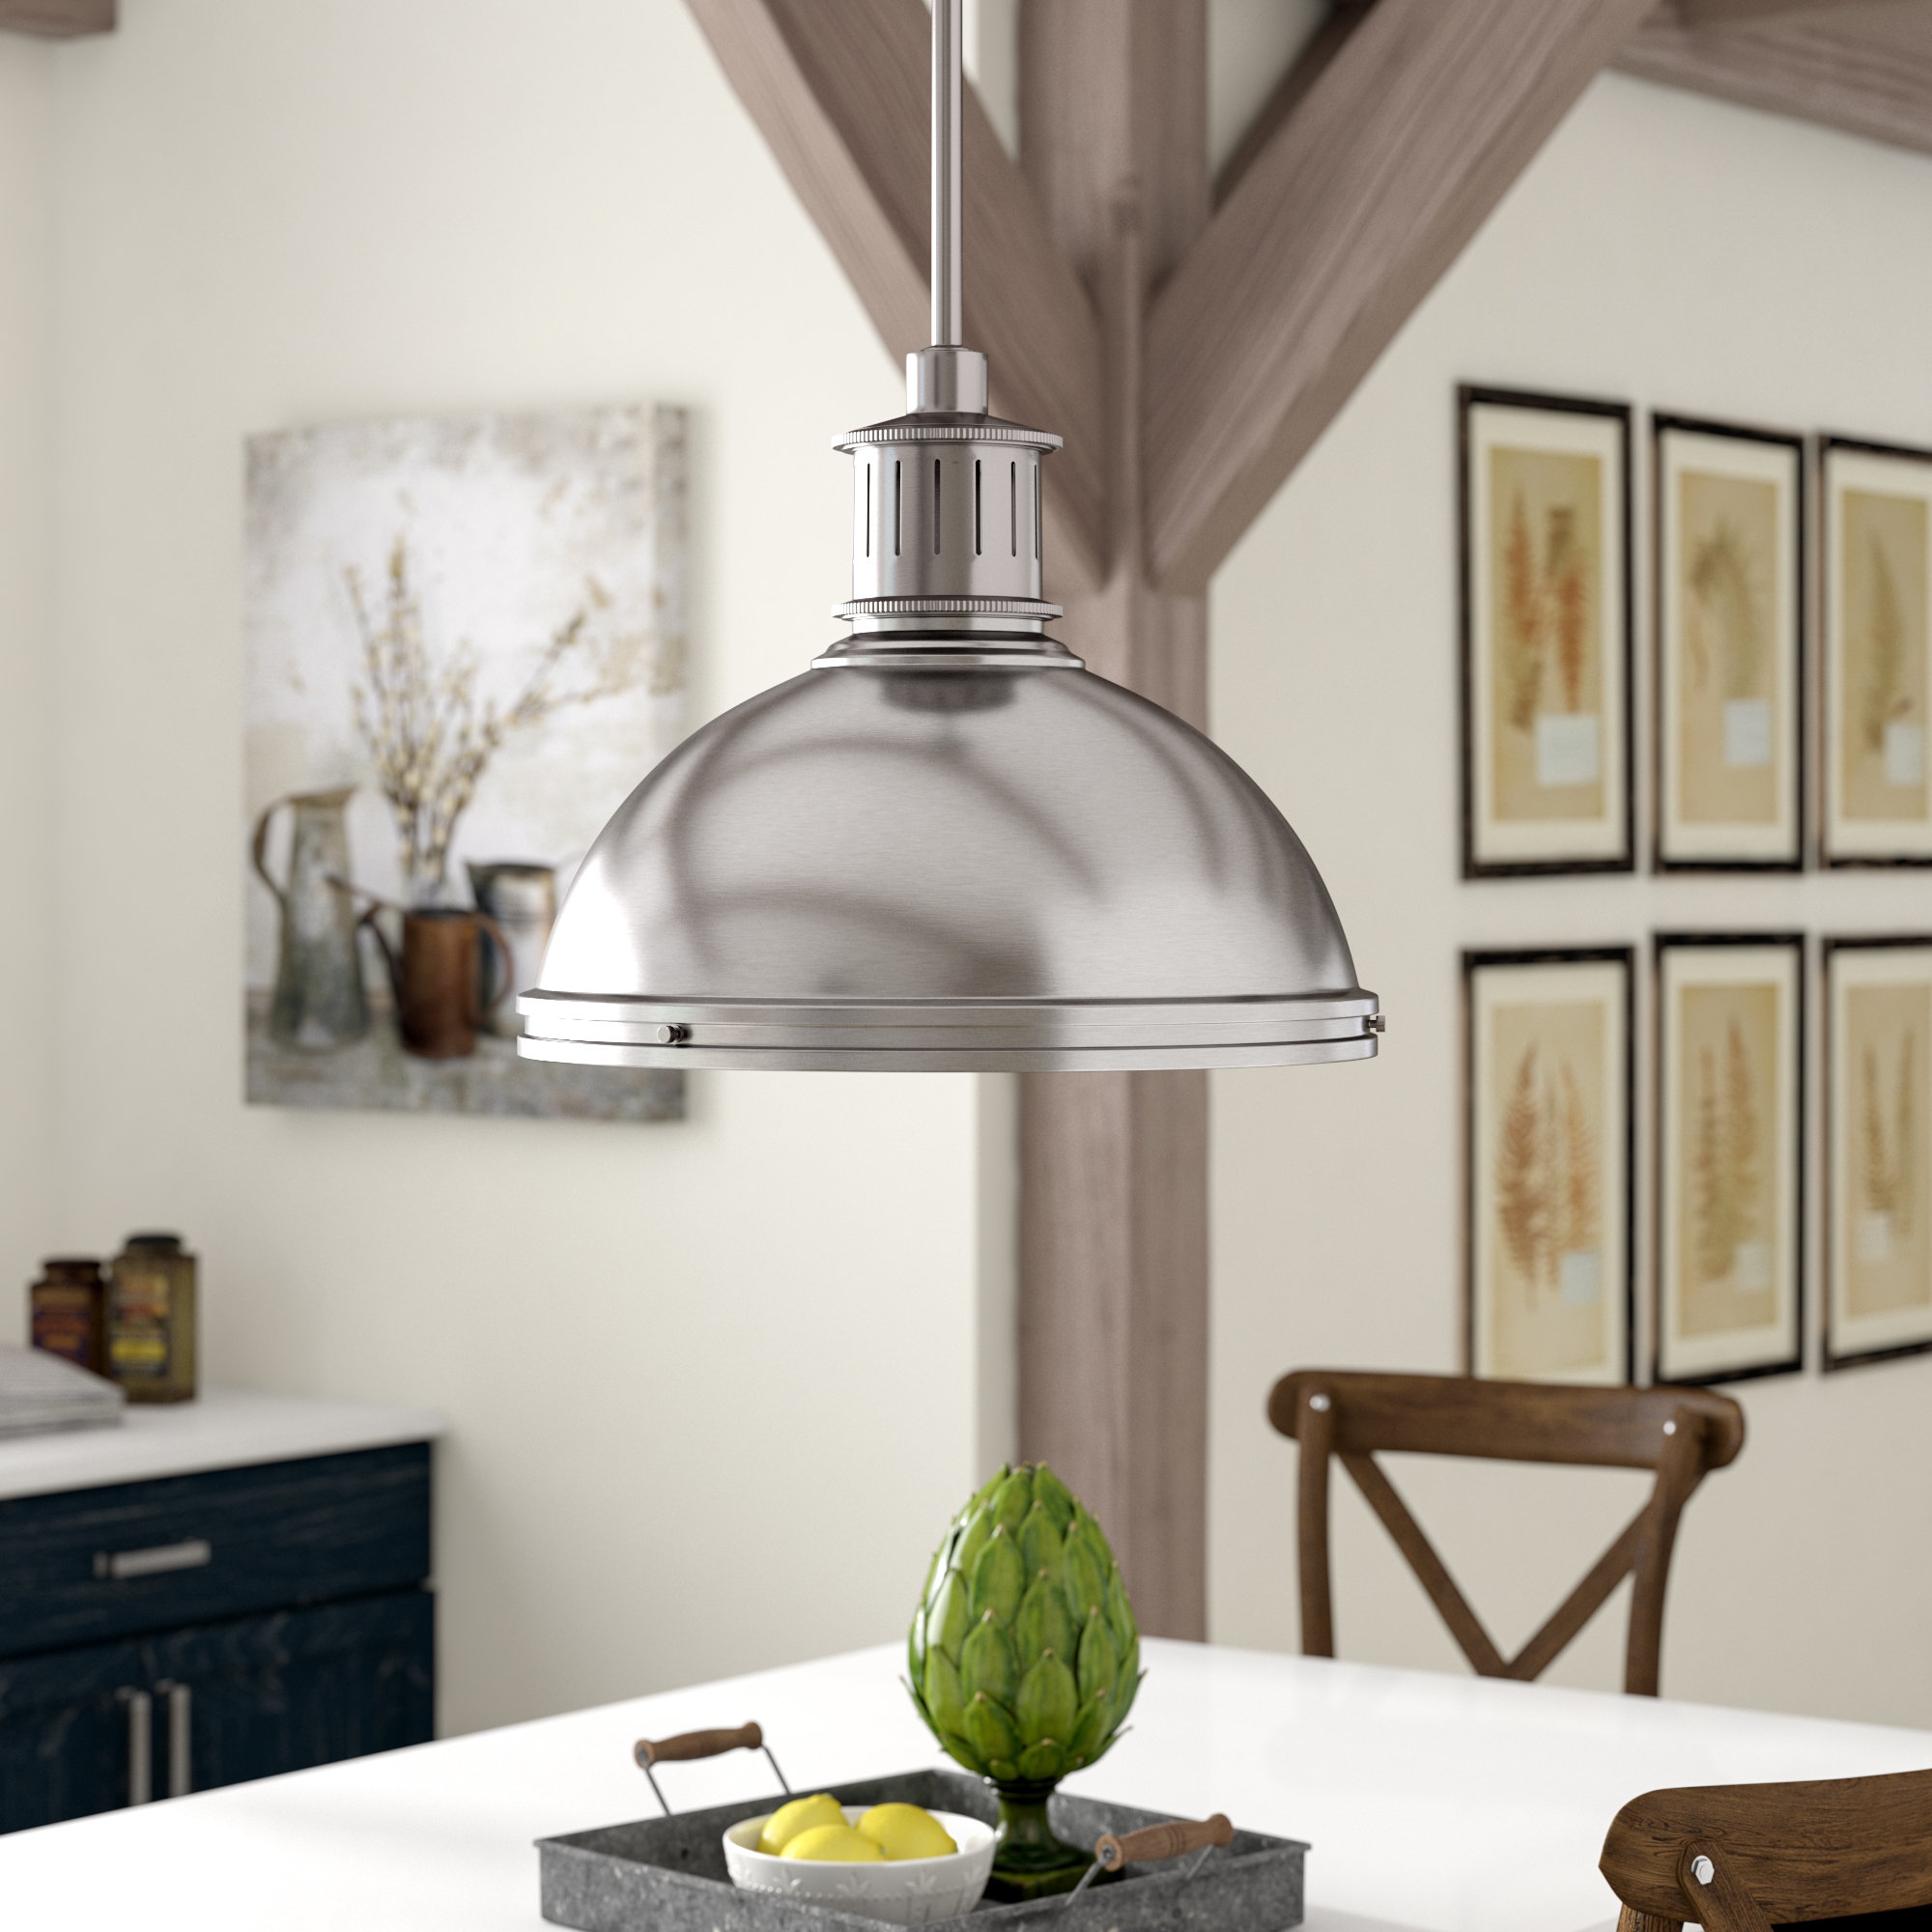 Most Recent Orchard Hill 1 Light Led Single Dome Pendant For Amara 3 Light Dome Pendants (View 15 of 20)